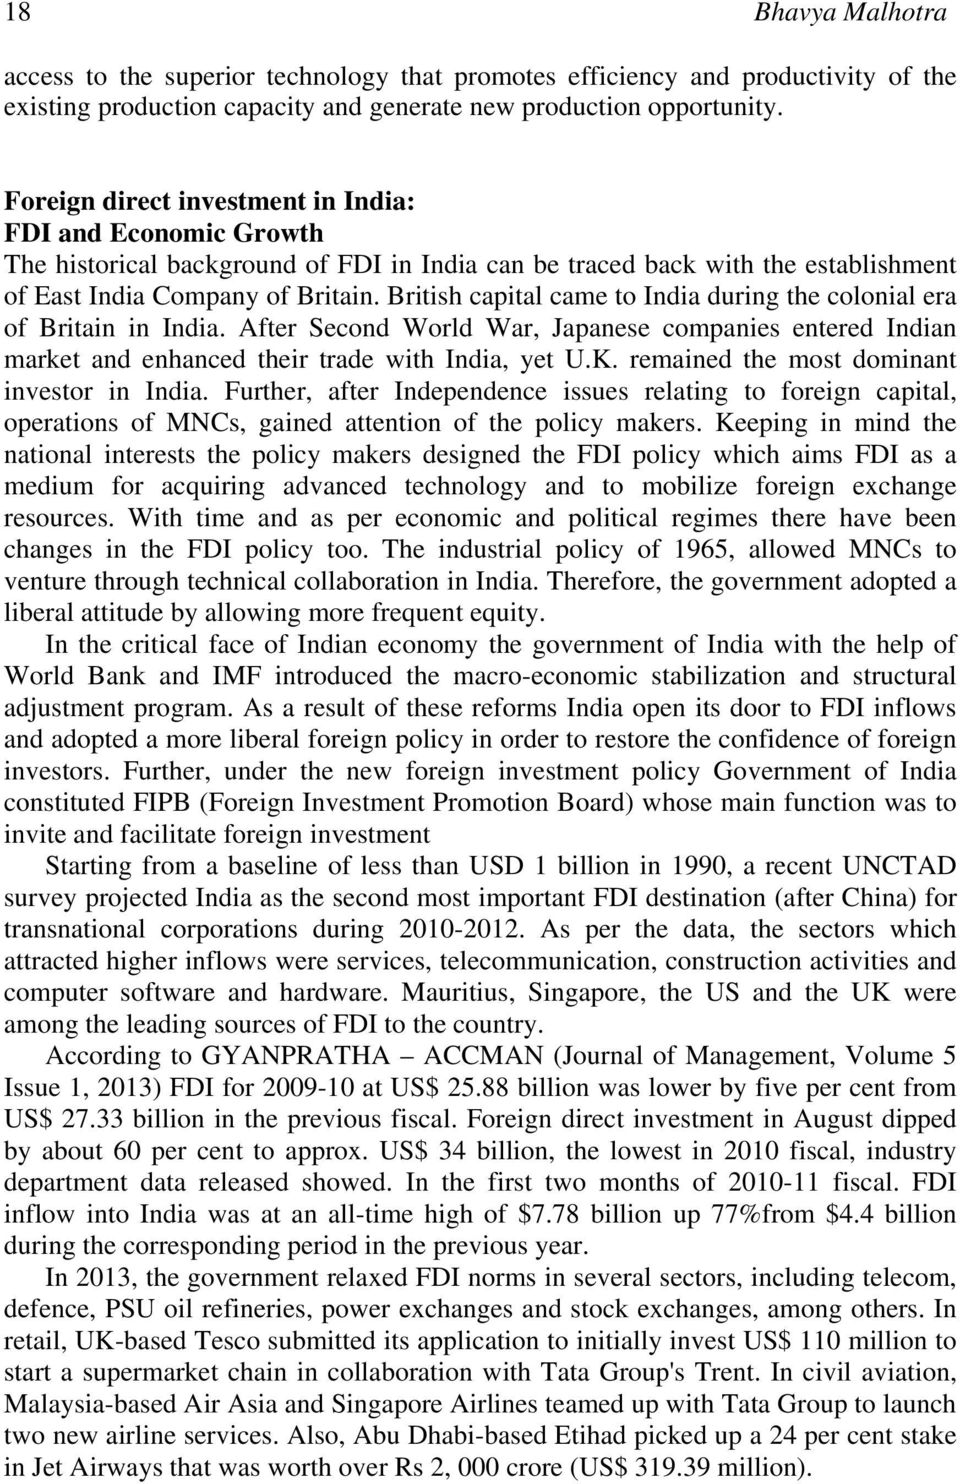 Foreign Direct Investment: Impact on Indian Economy - PDF